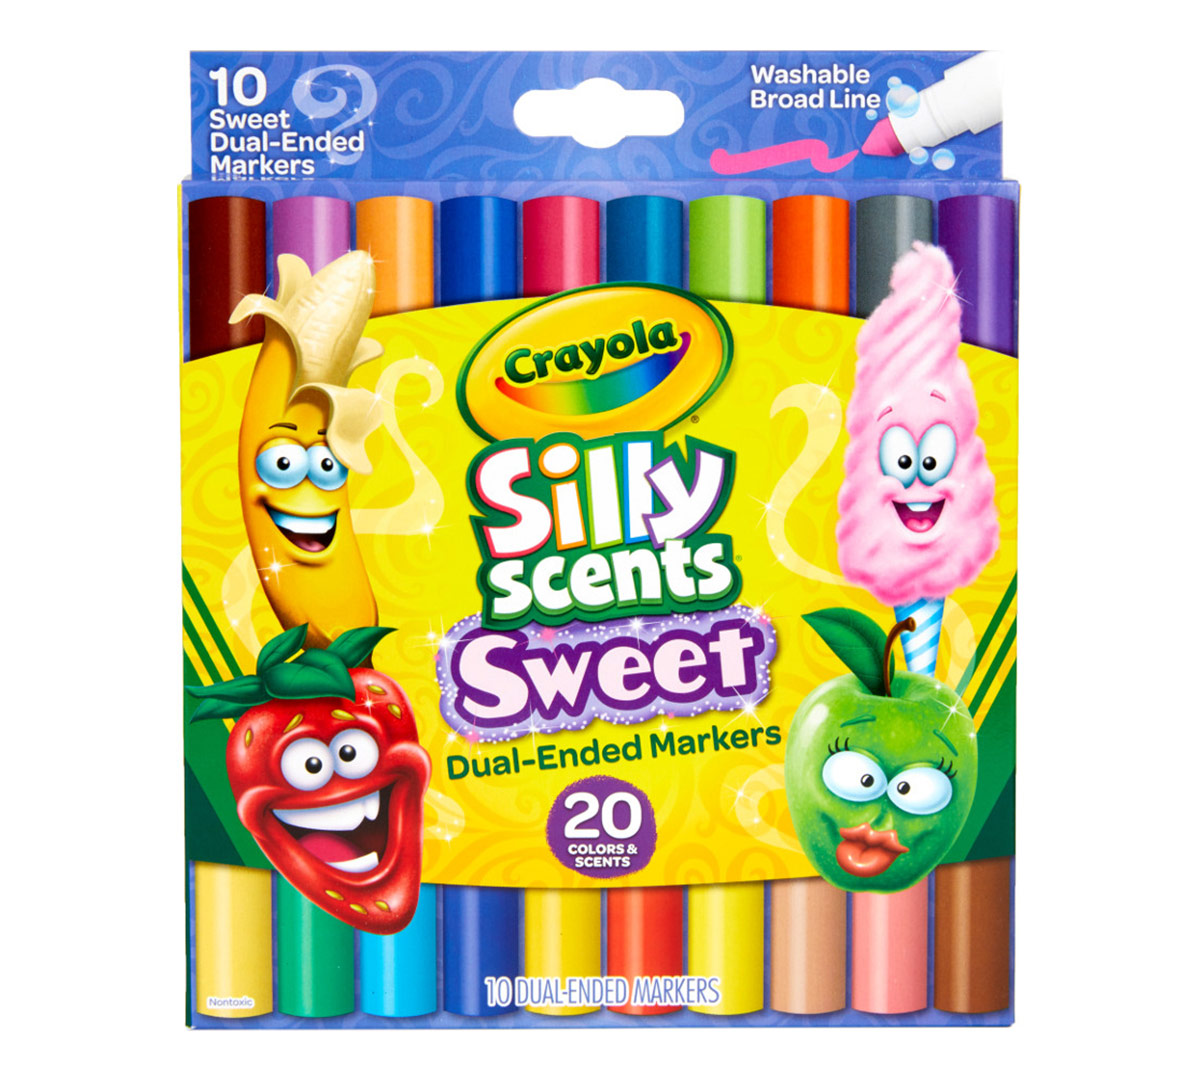 Silly Scents Sweet Dual Ended Markers 10 Count Crayola